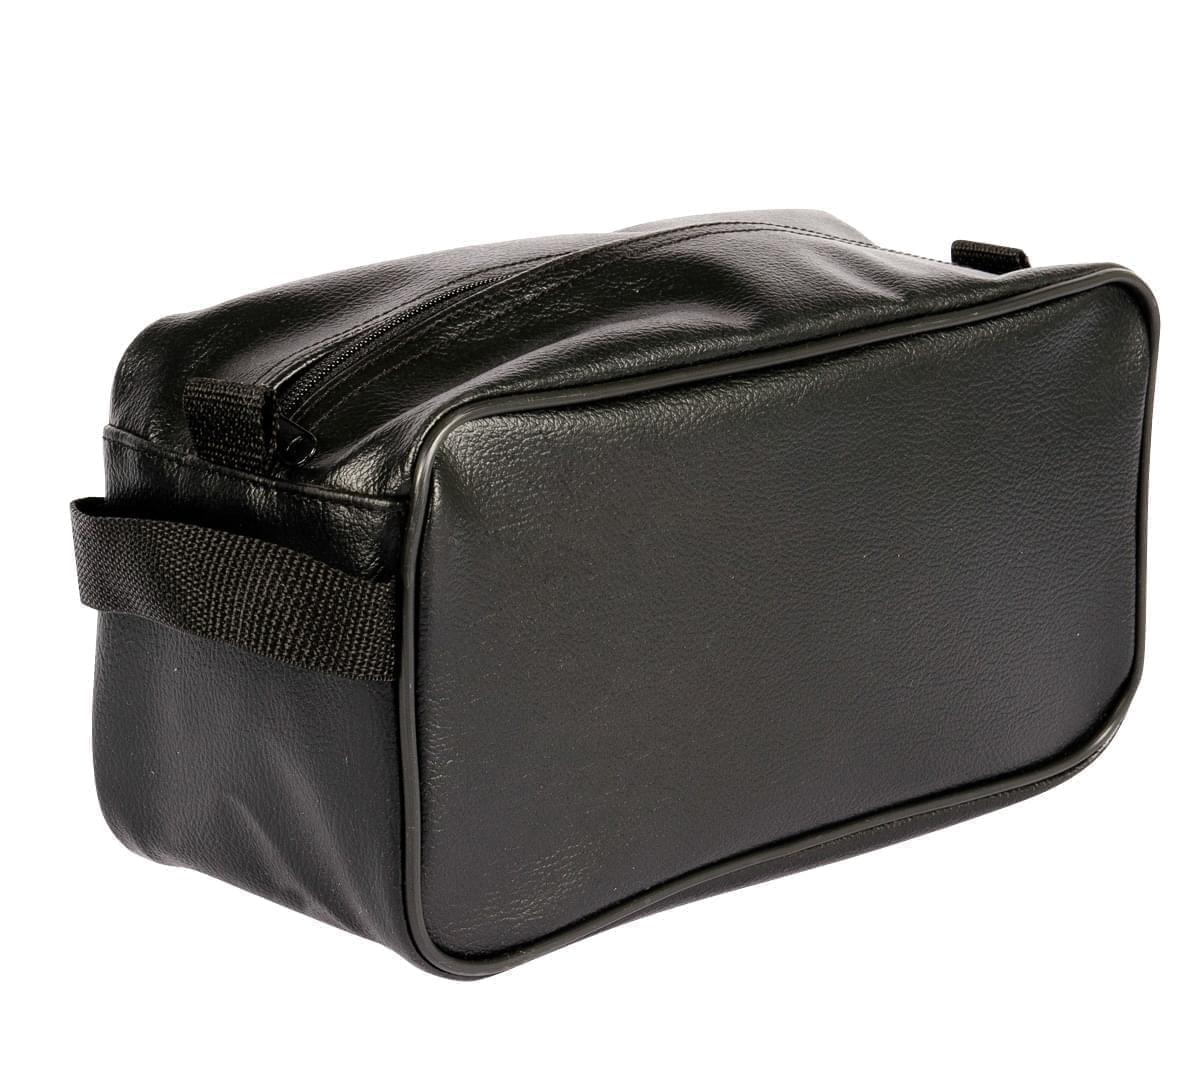 USA Made Cosmetic & Toiletry Cases, Black-Black, 3000996-AOR